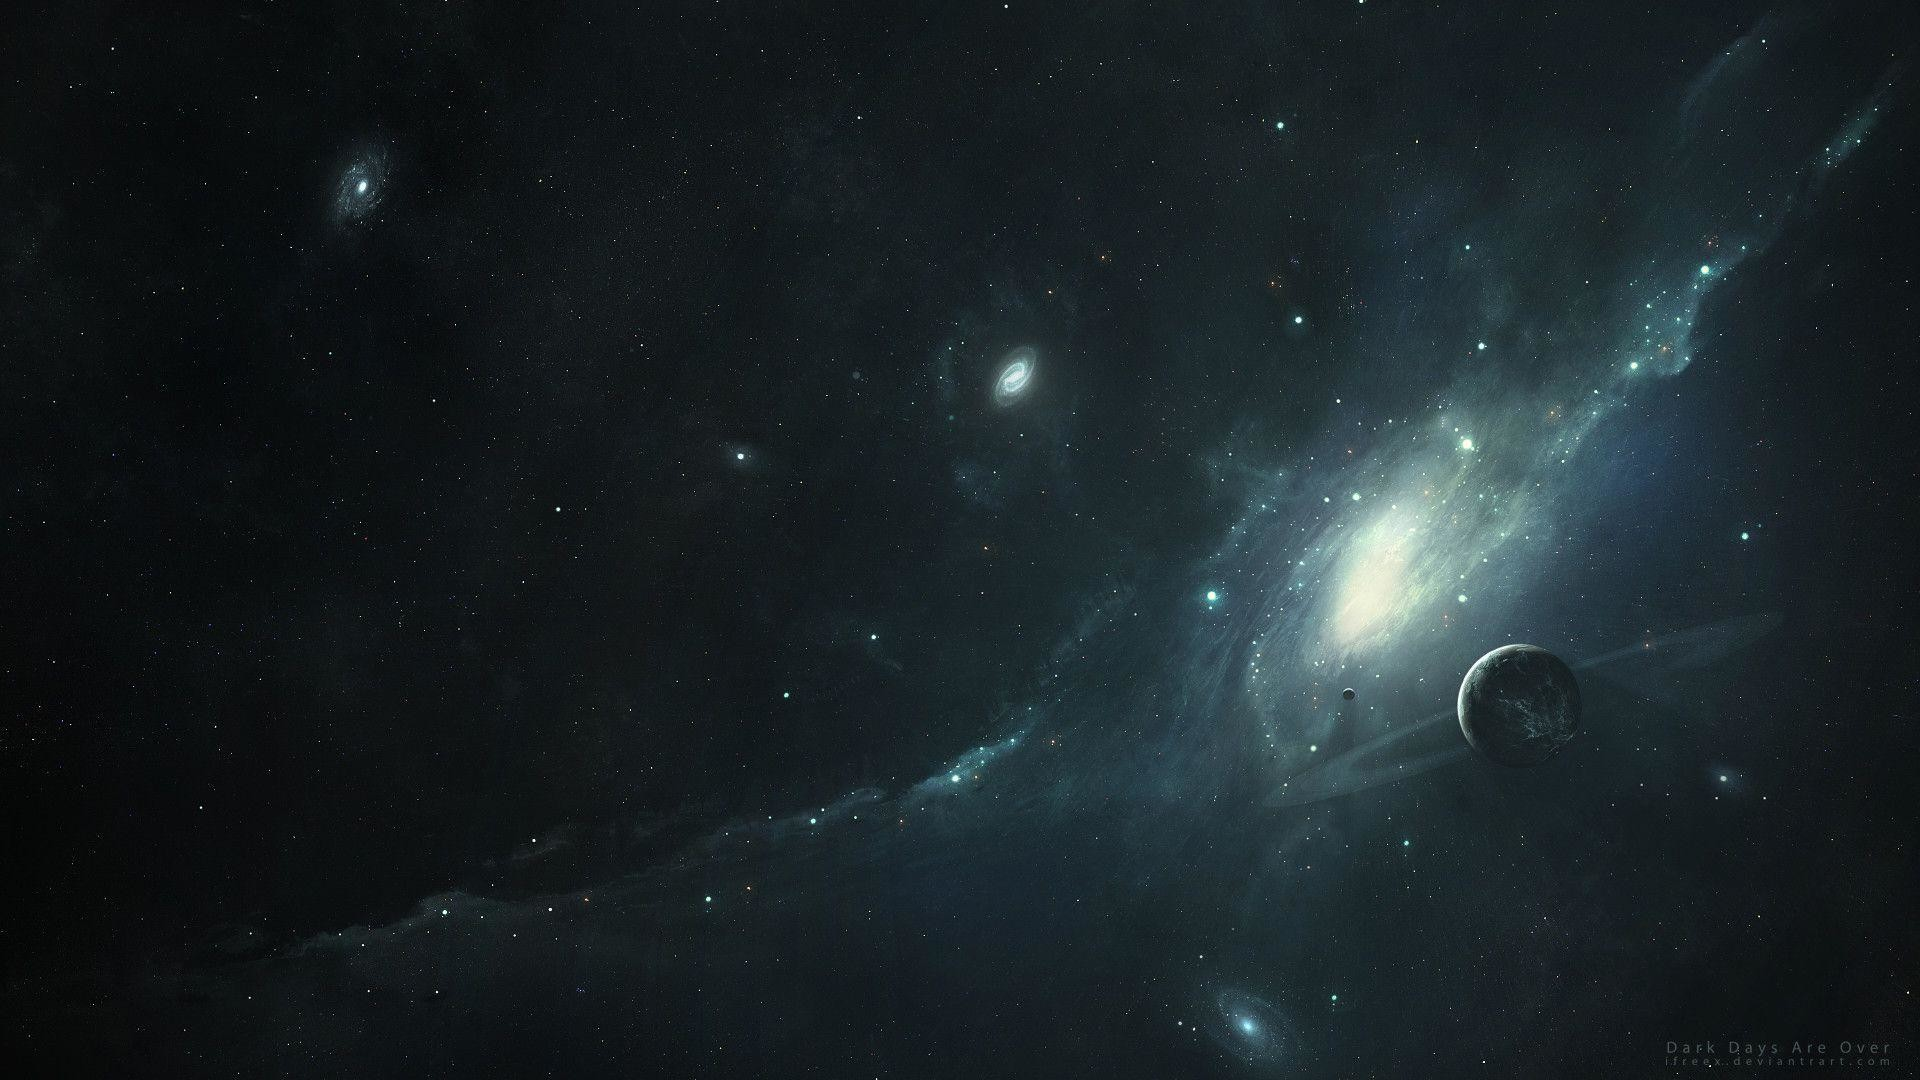 Epic space wallpaper 69 images - Space wallpaper 1600x900 ...